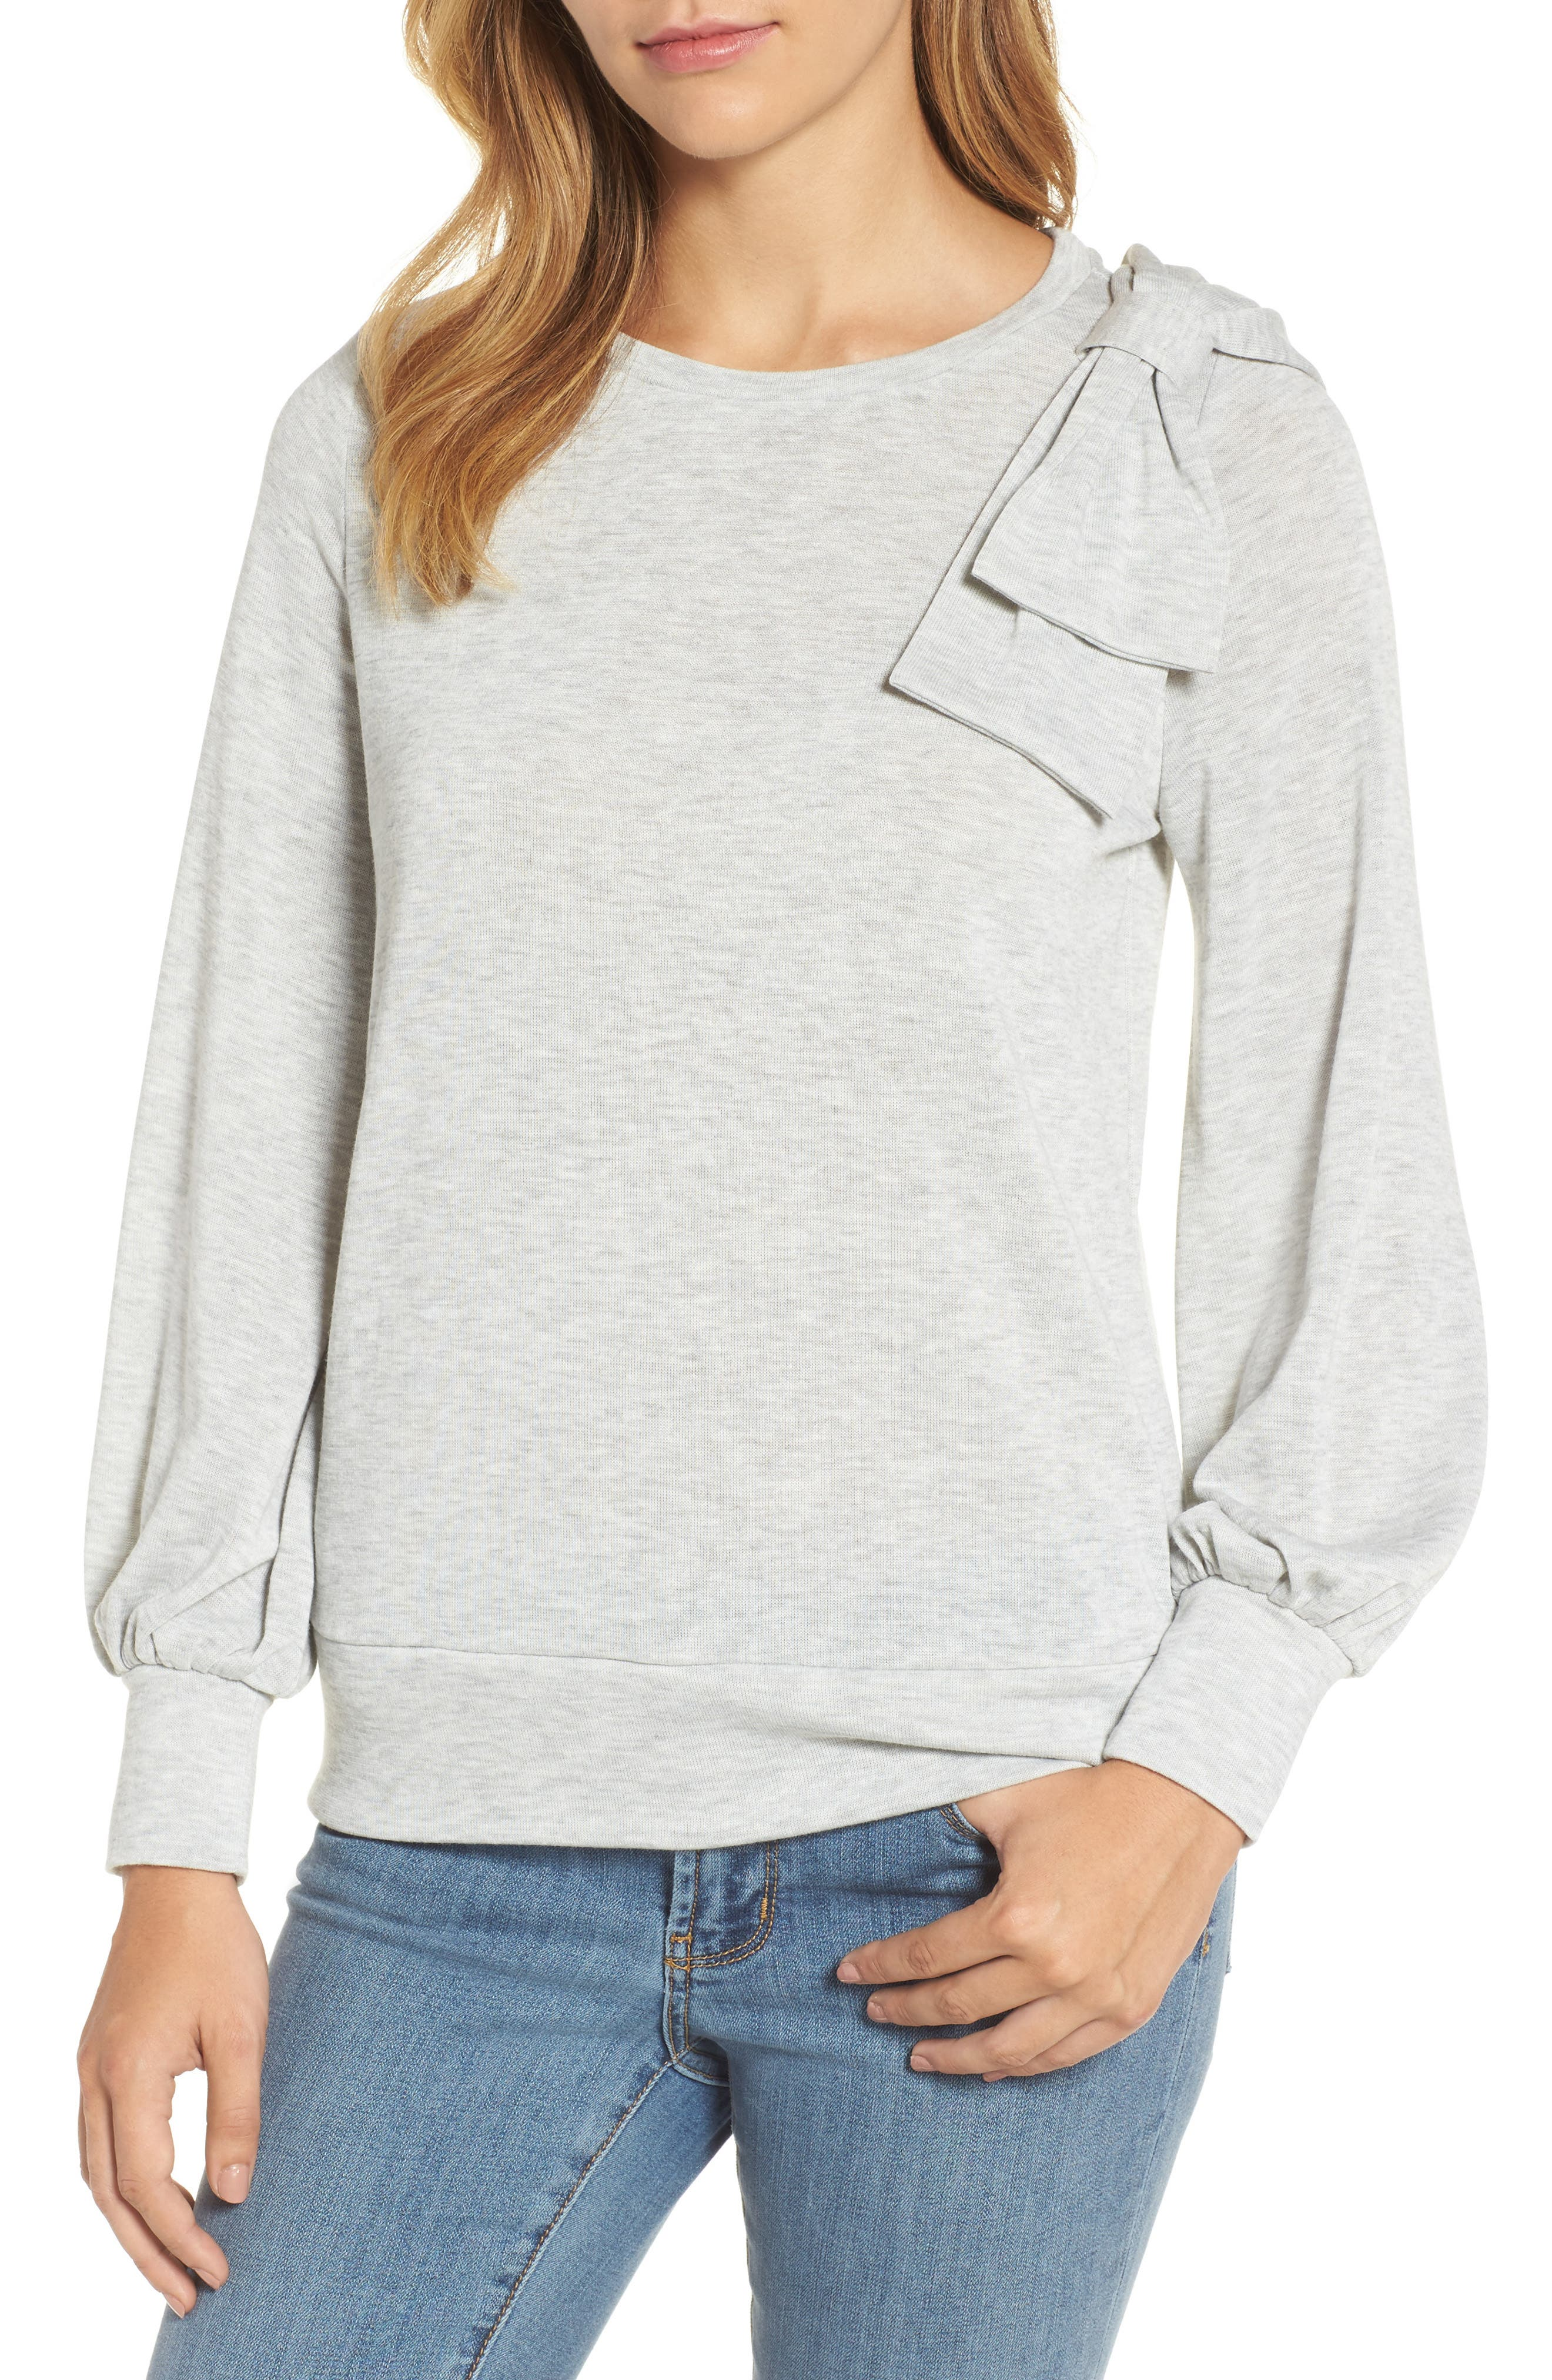 Bow Knit Sweatshirt,                         Main,                         color, Grey Heather